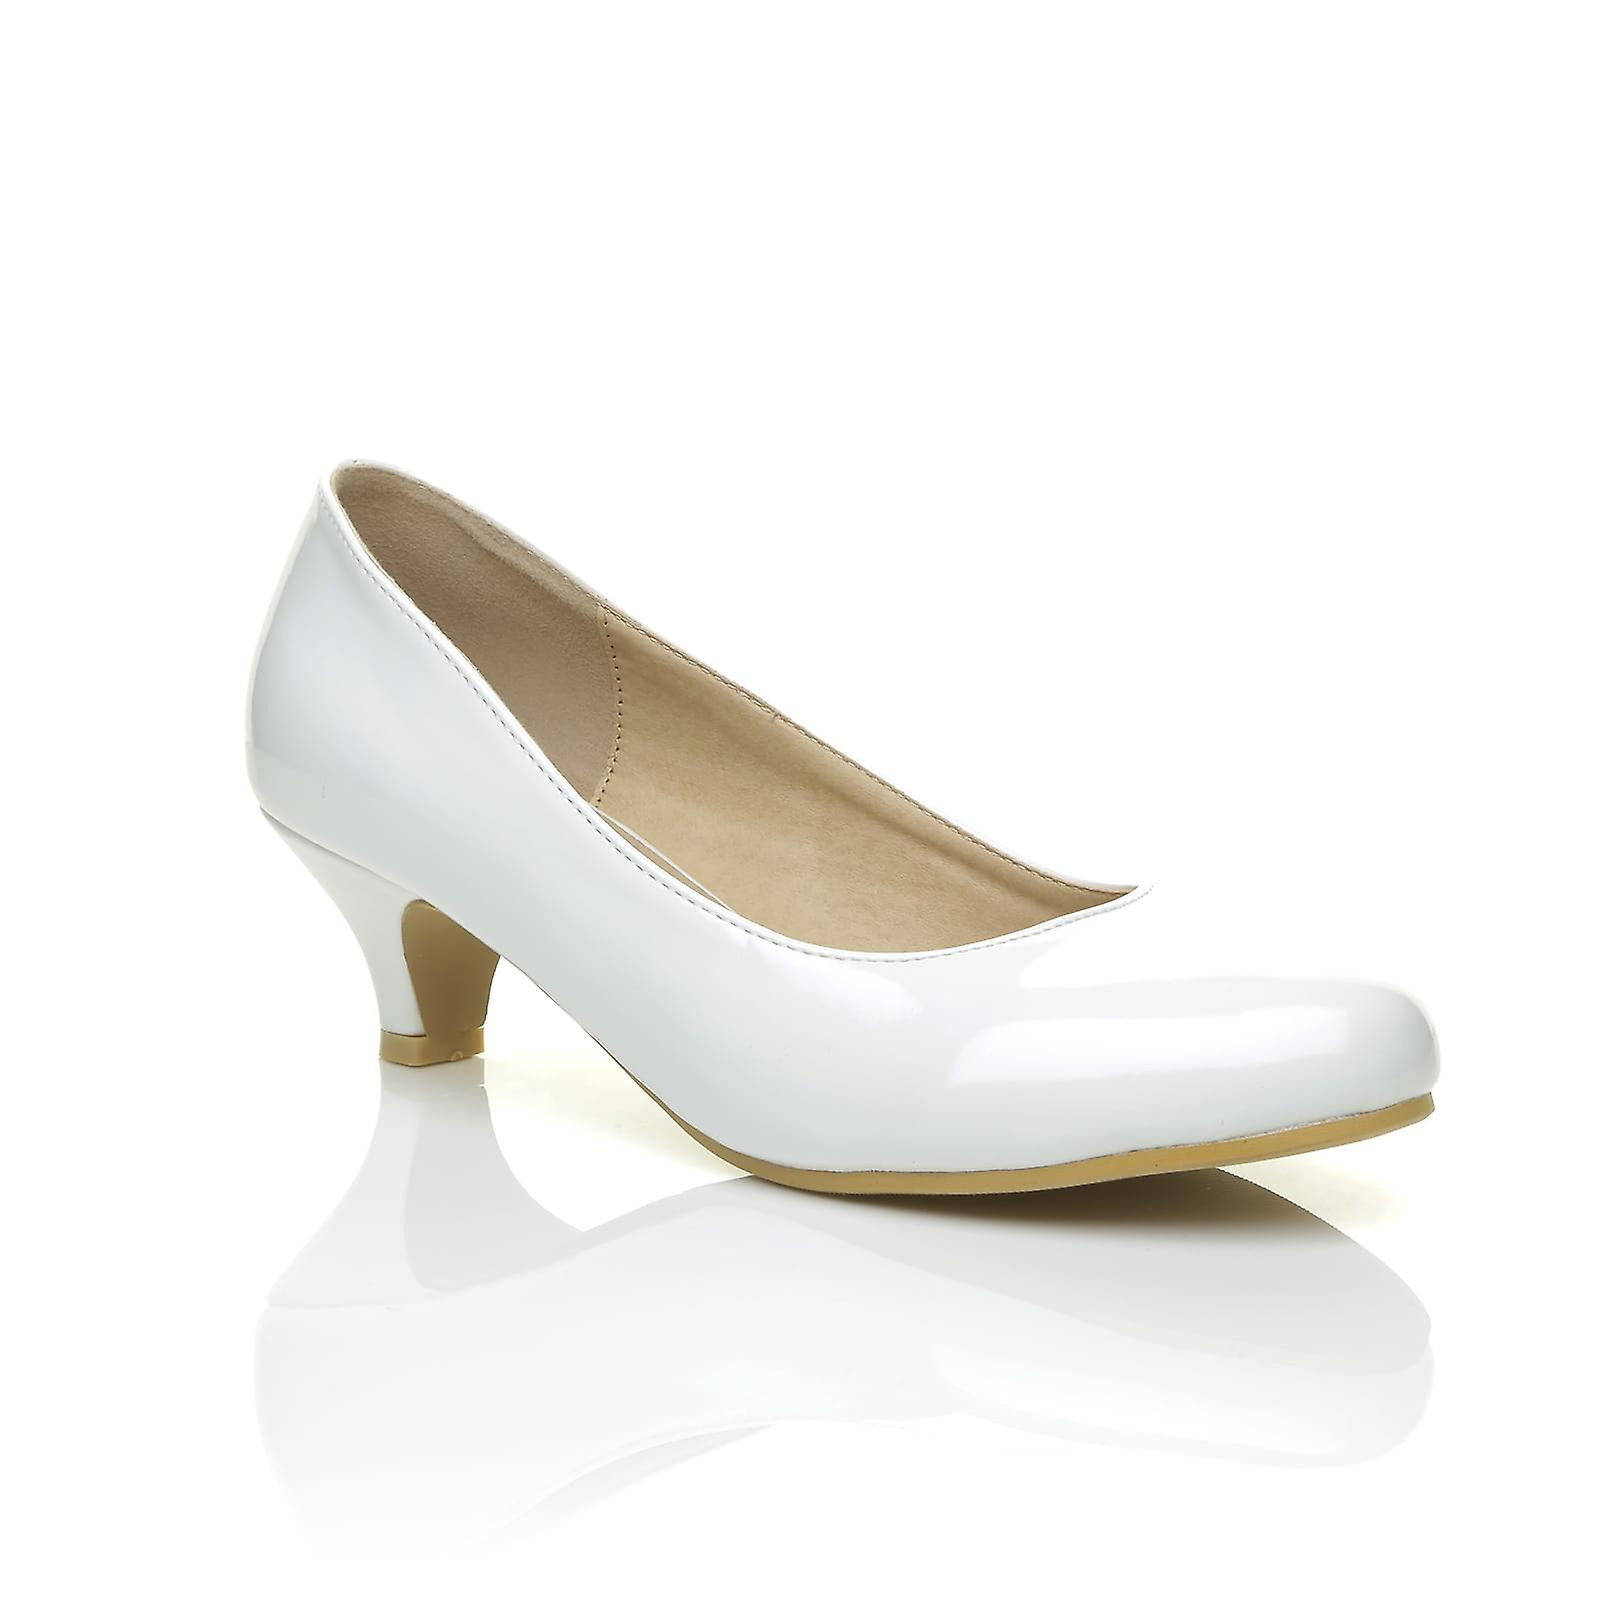 CHARM White Patent PU Leather Low Heel Heel Heel Round Toe Comfort Court Shoes e2d966